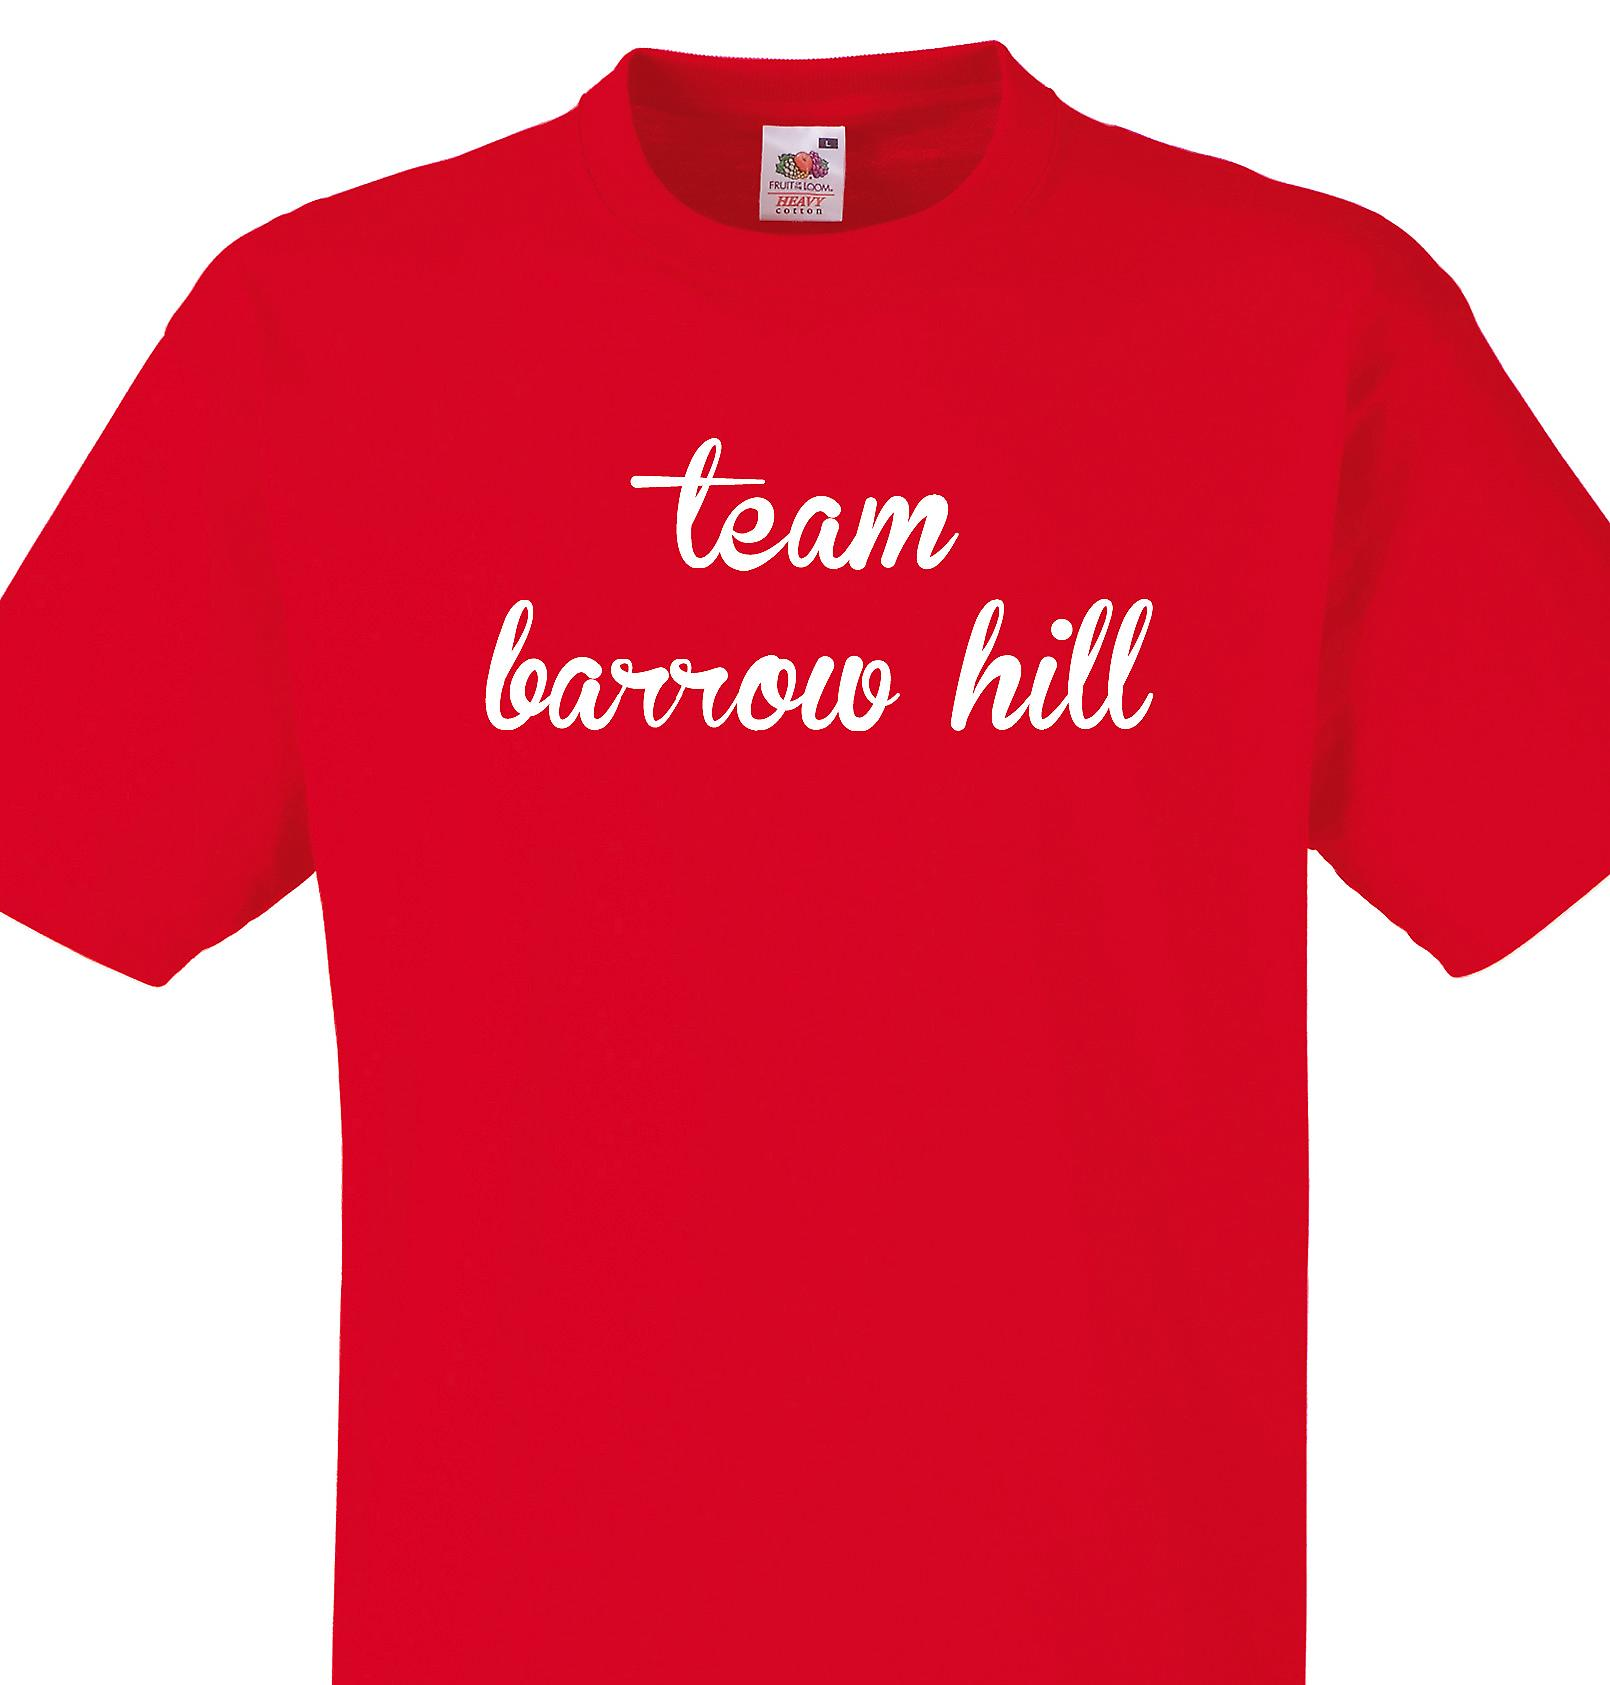 Team Barrow hill Red T shirt